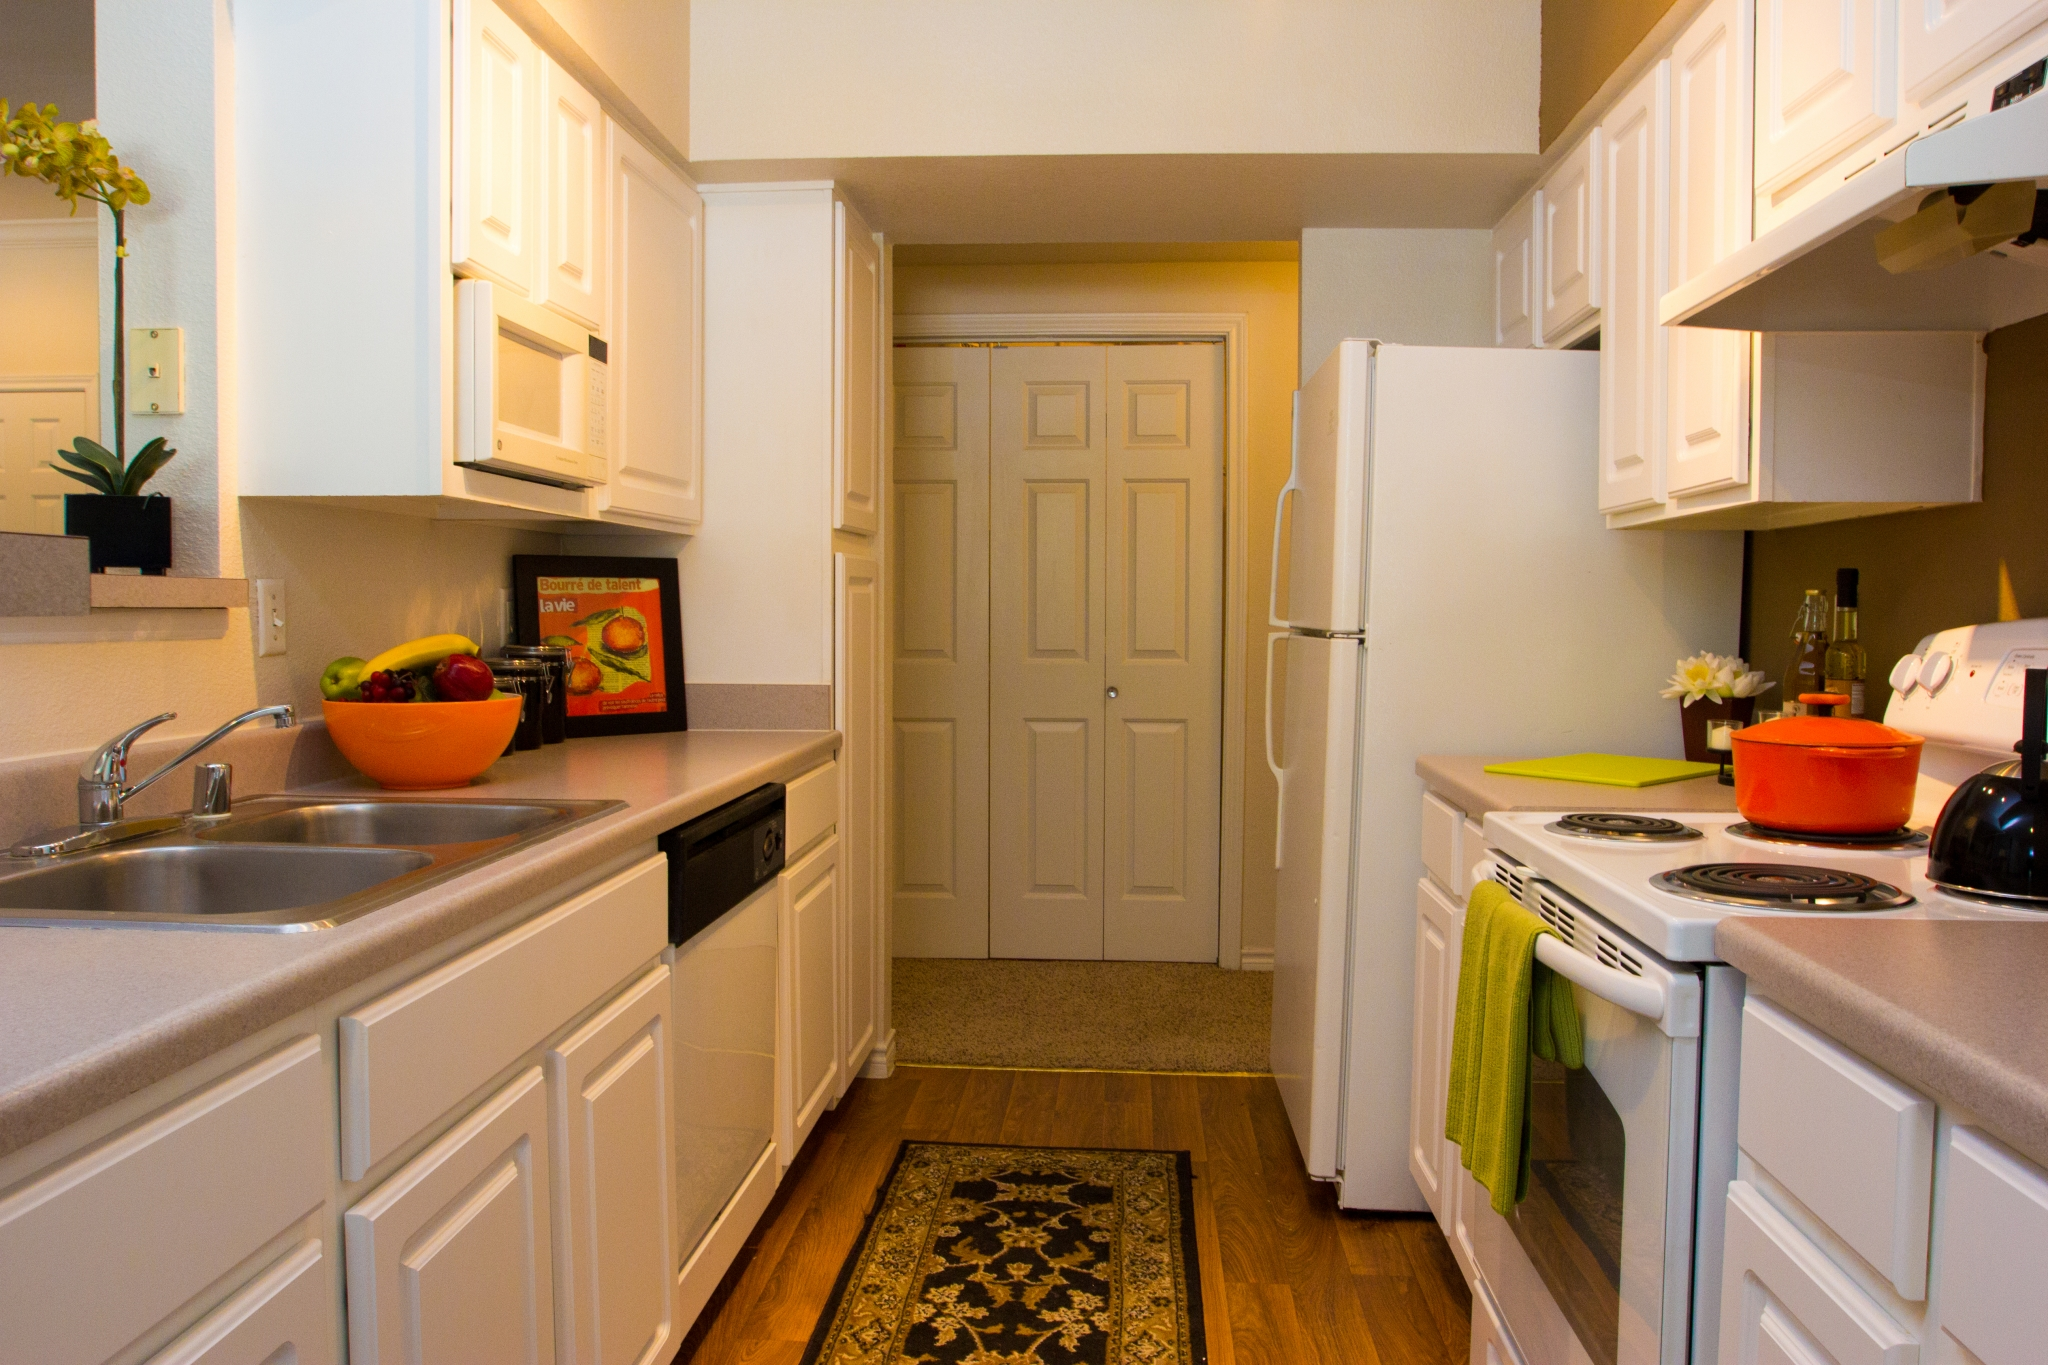 The Lodge at River Park Apartments Kitchen